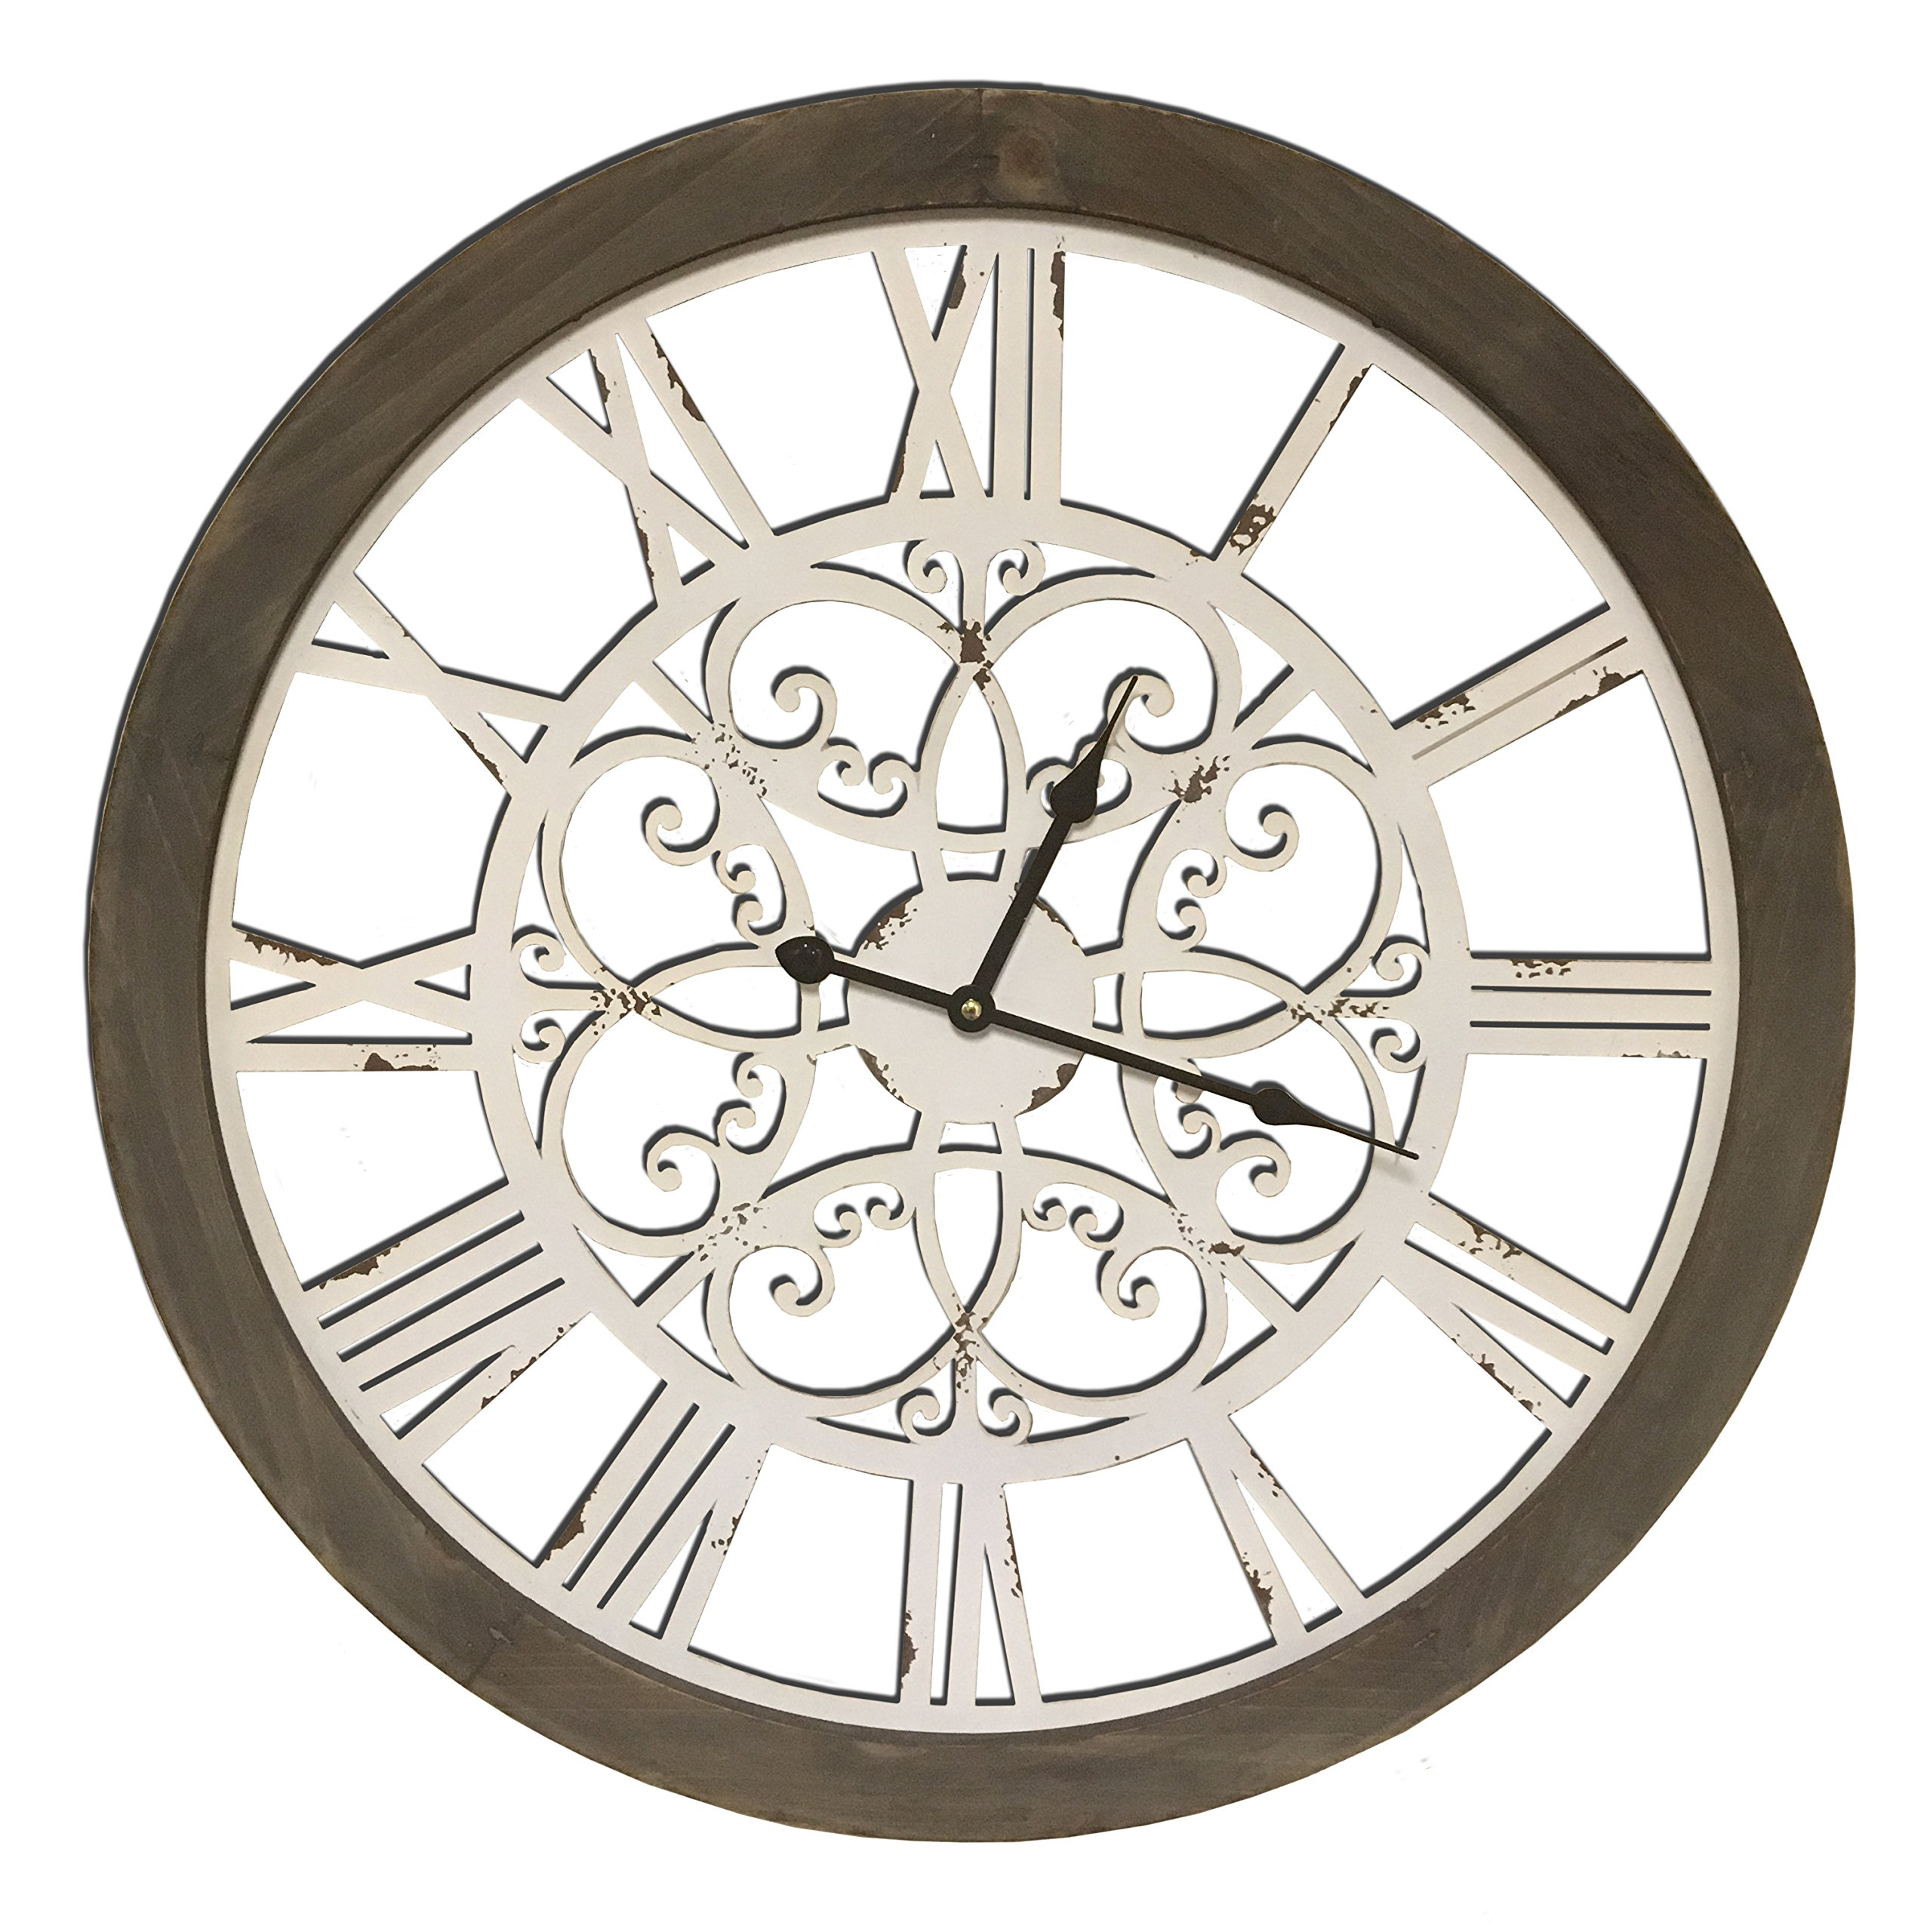 Round Decorative Metal and Wood Clock With Ornate Metal Swirl Design Quartz Movement 23 x 23 x 2 Inches Great Antique Look With Combined Materials Construction...0101